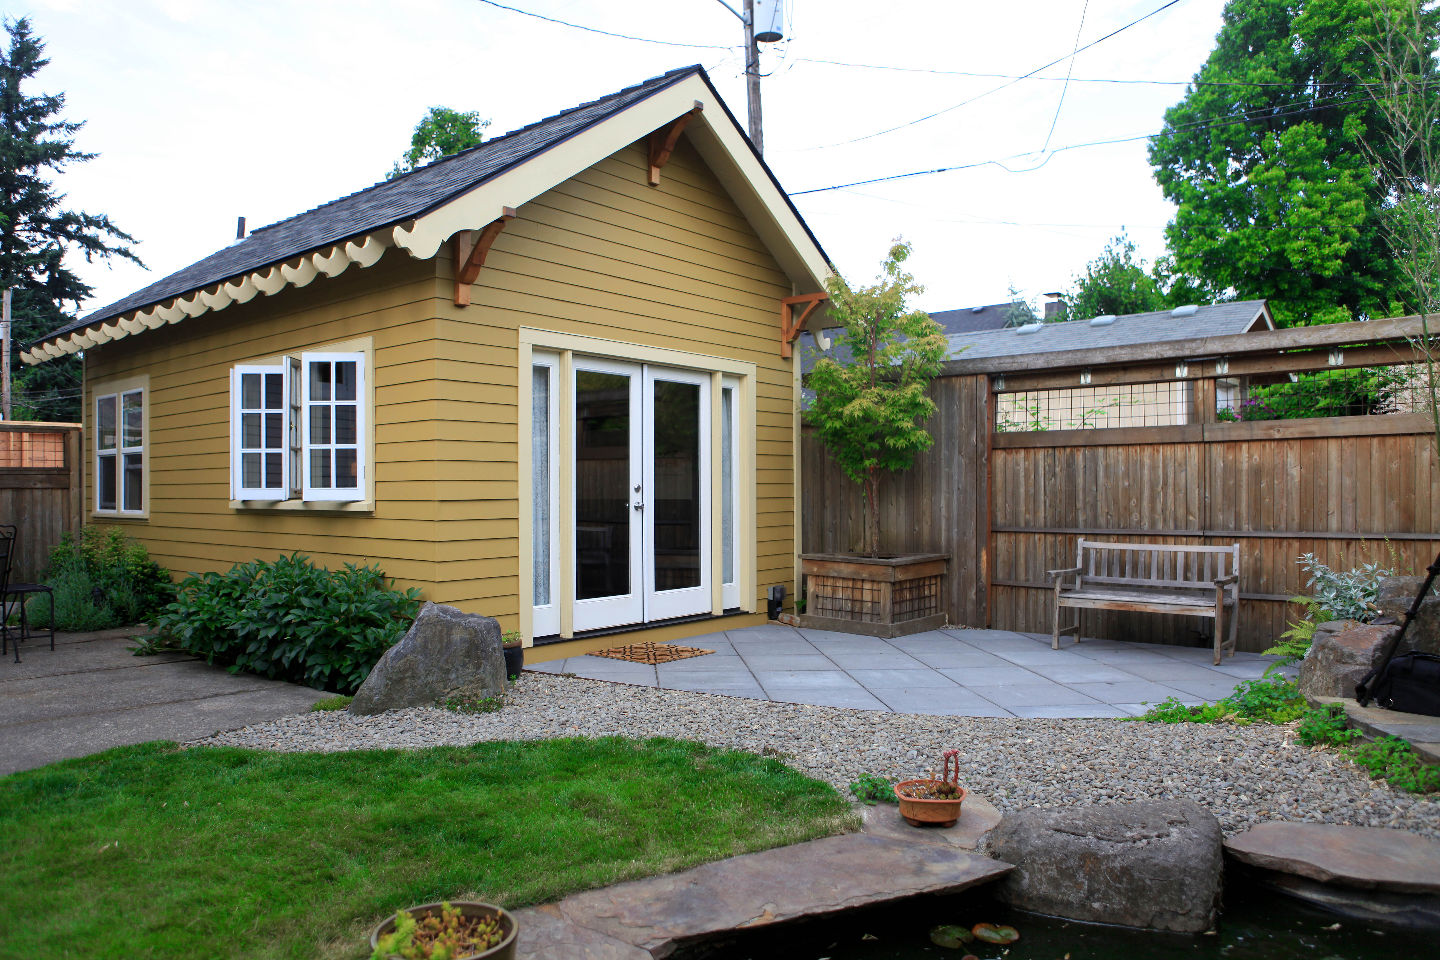 Superieur This Tiny Backyard Cottage In Portland, Oregon, Is Likely A Converted  Garage. It